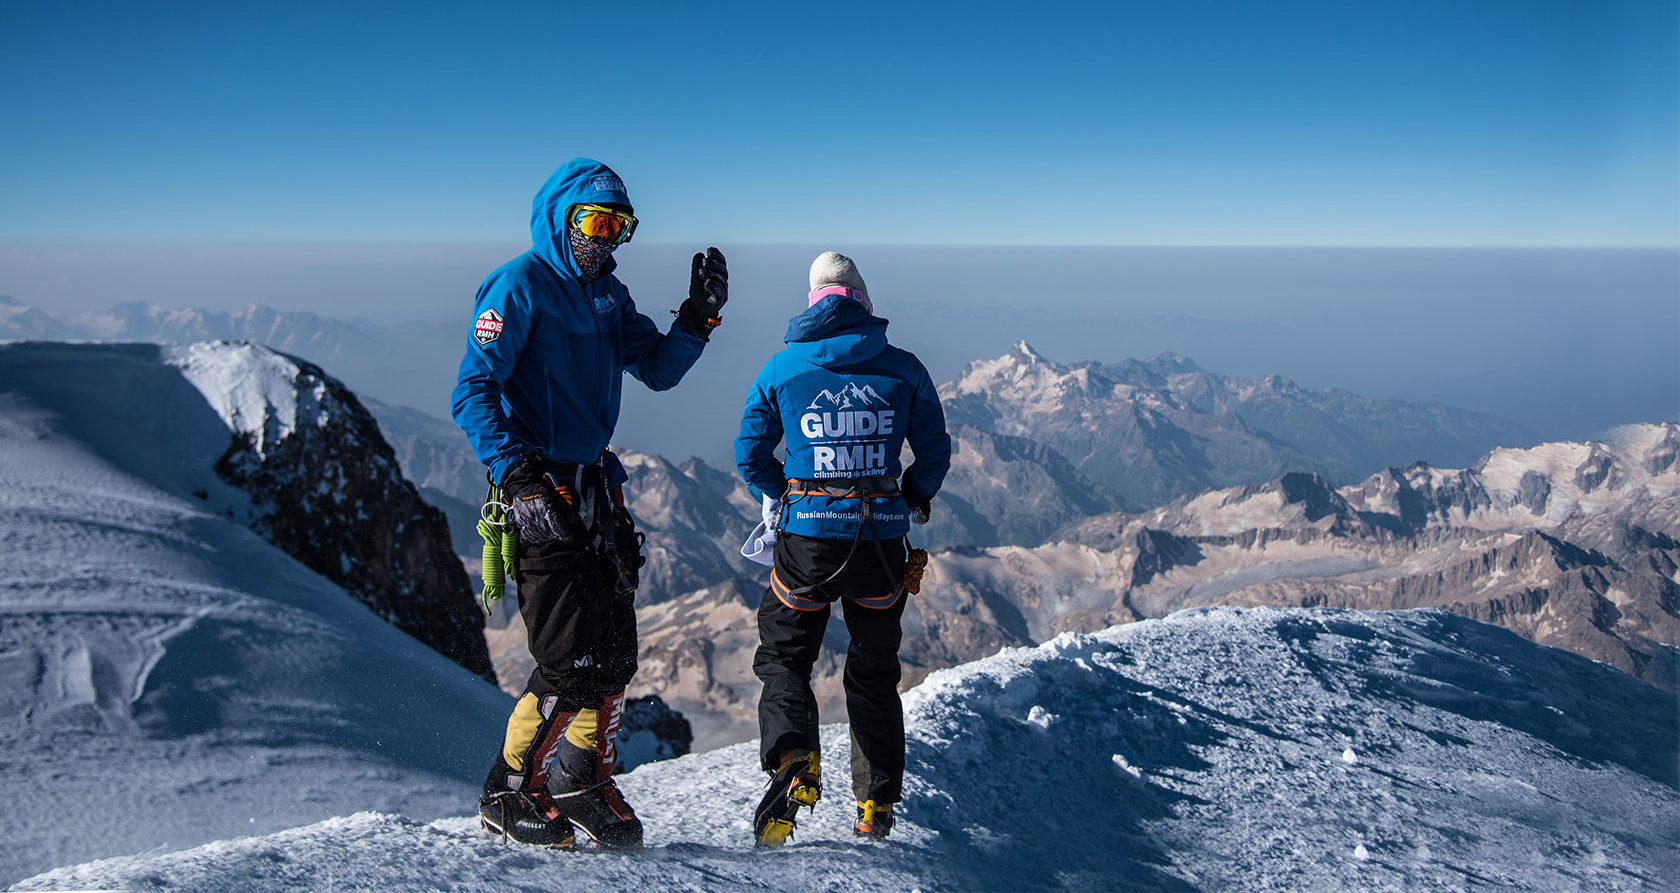 RMH ELBRUS GUIDES